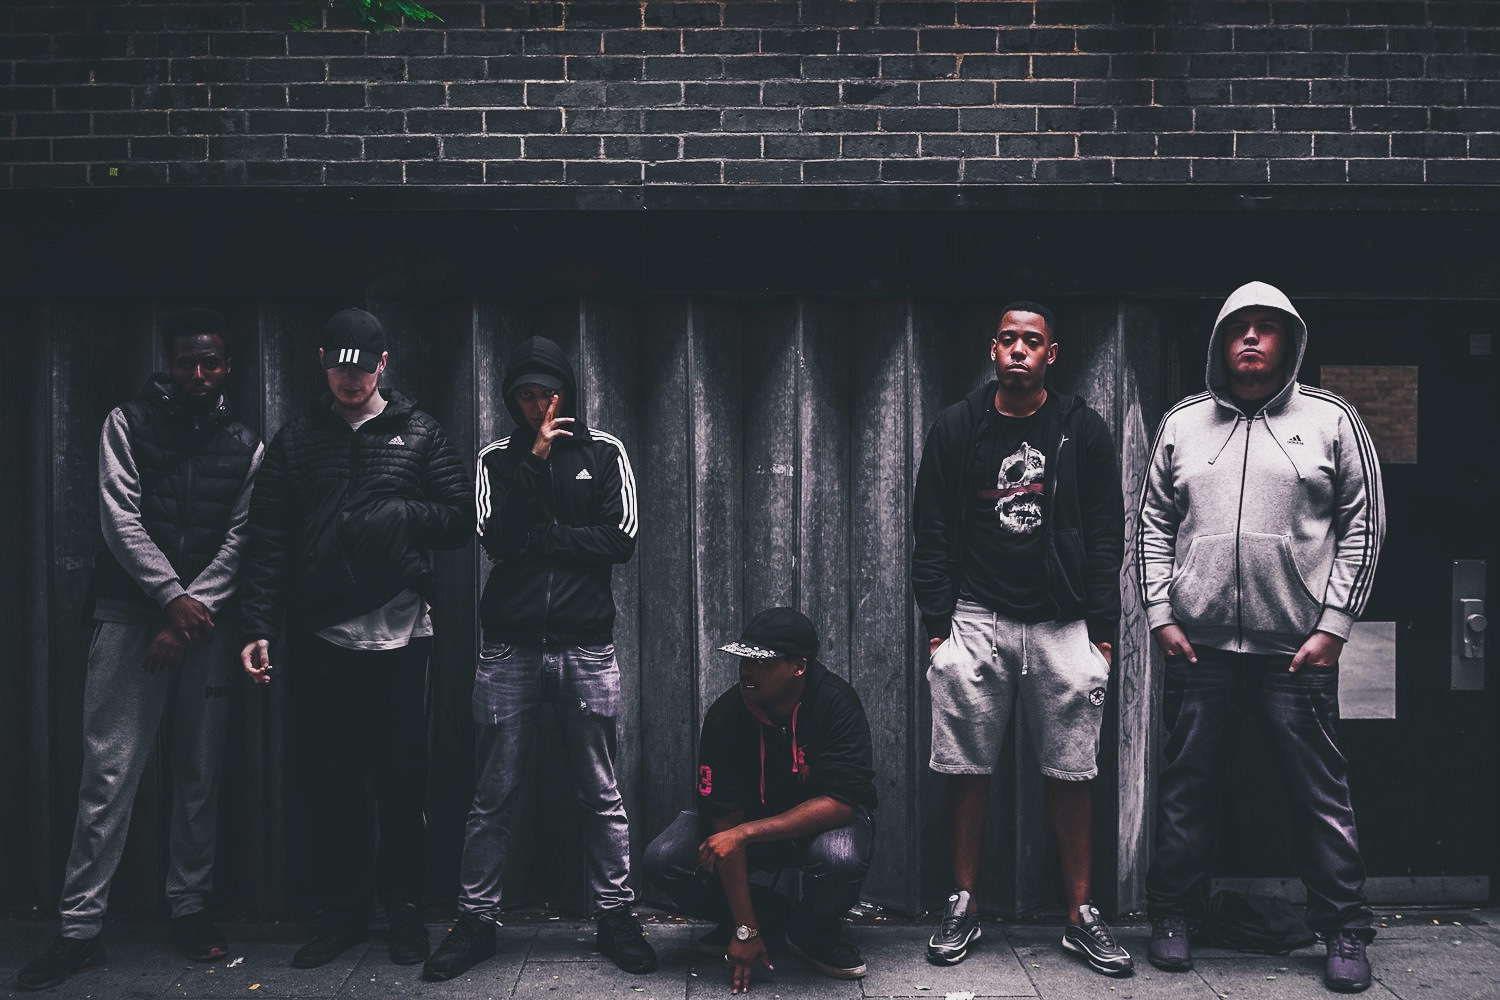 STAINLESS CREW DROP THEIR EXCITING DEBUT PROJECT 'STAINLESS001' -